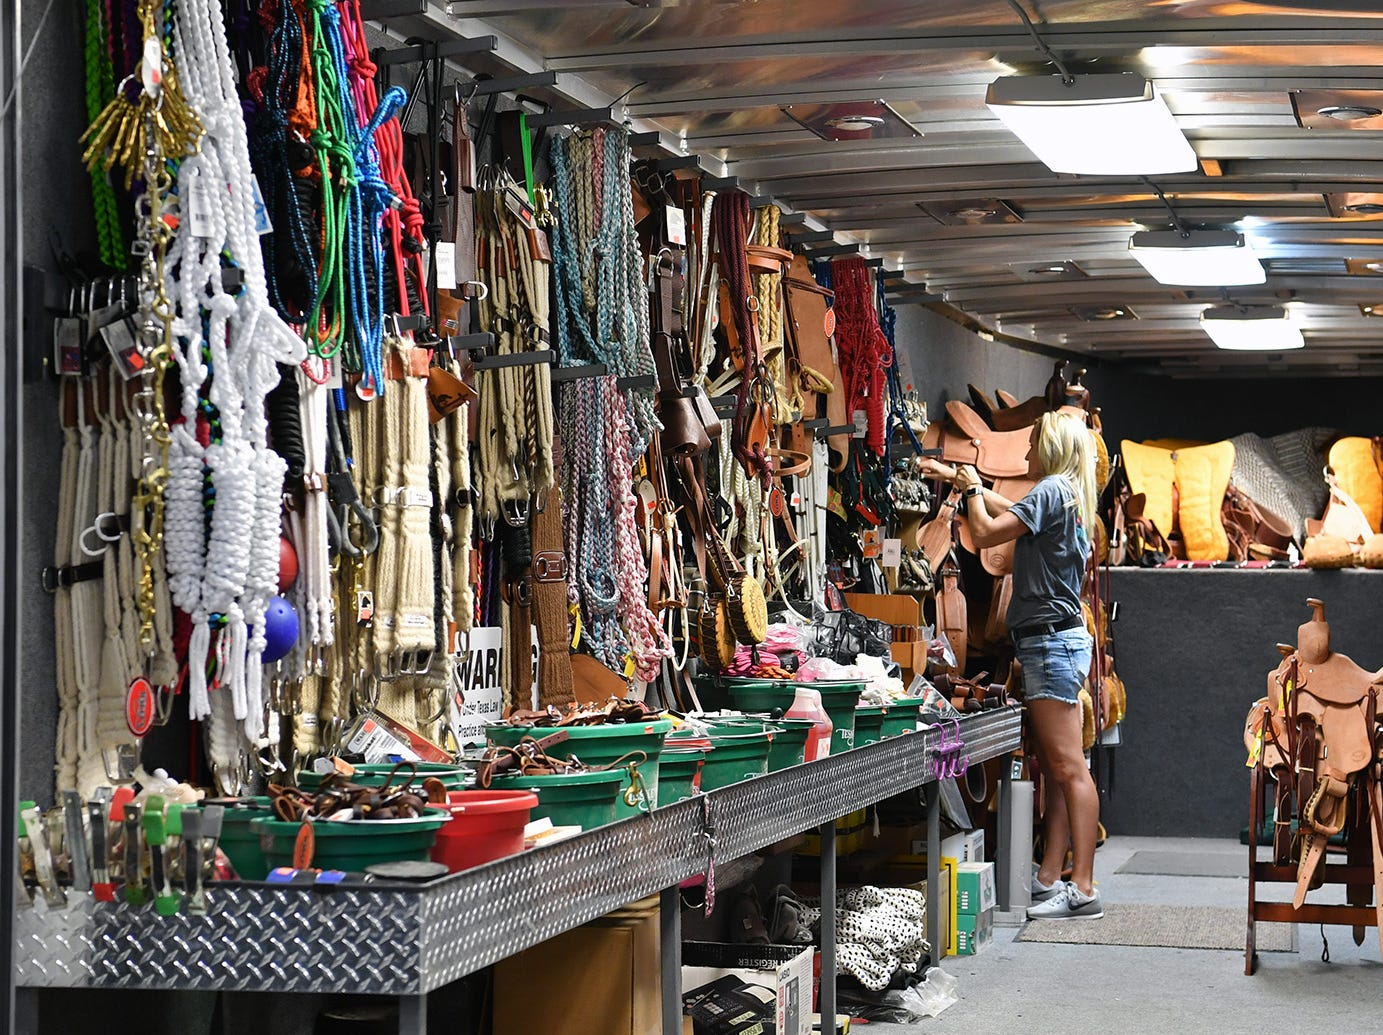 Teskey's Circle T Saddlery brought a trailer full of merchandise to the Texas Ranch Roundup trade show Thursday morning at the Ray C;ymer Exhibit Hall.